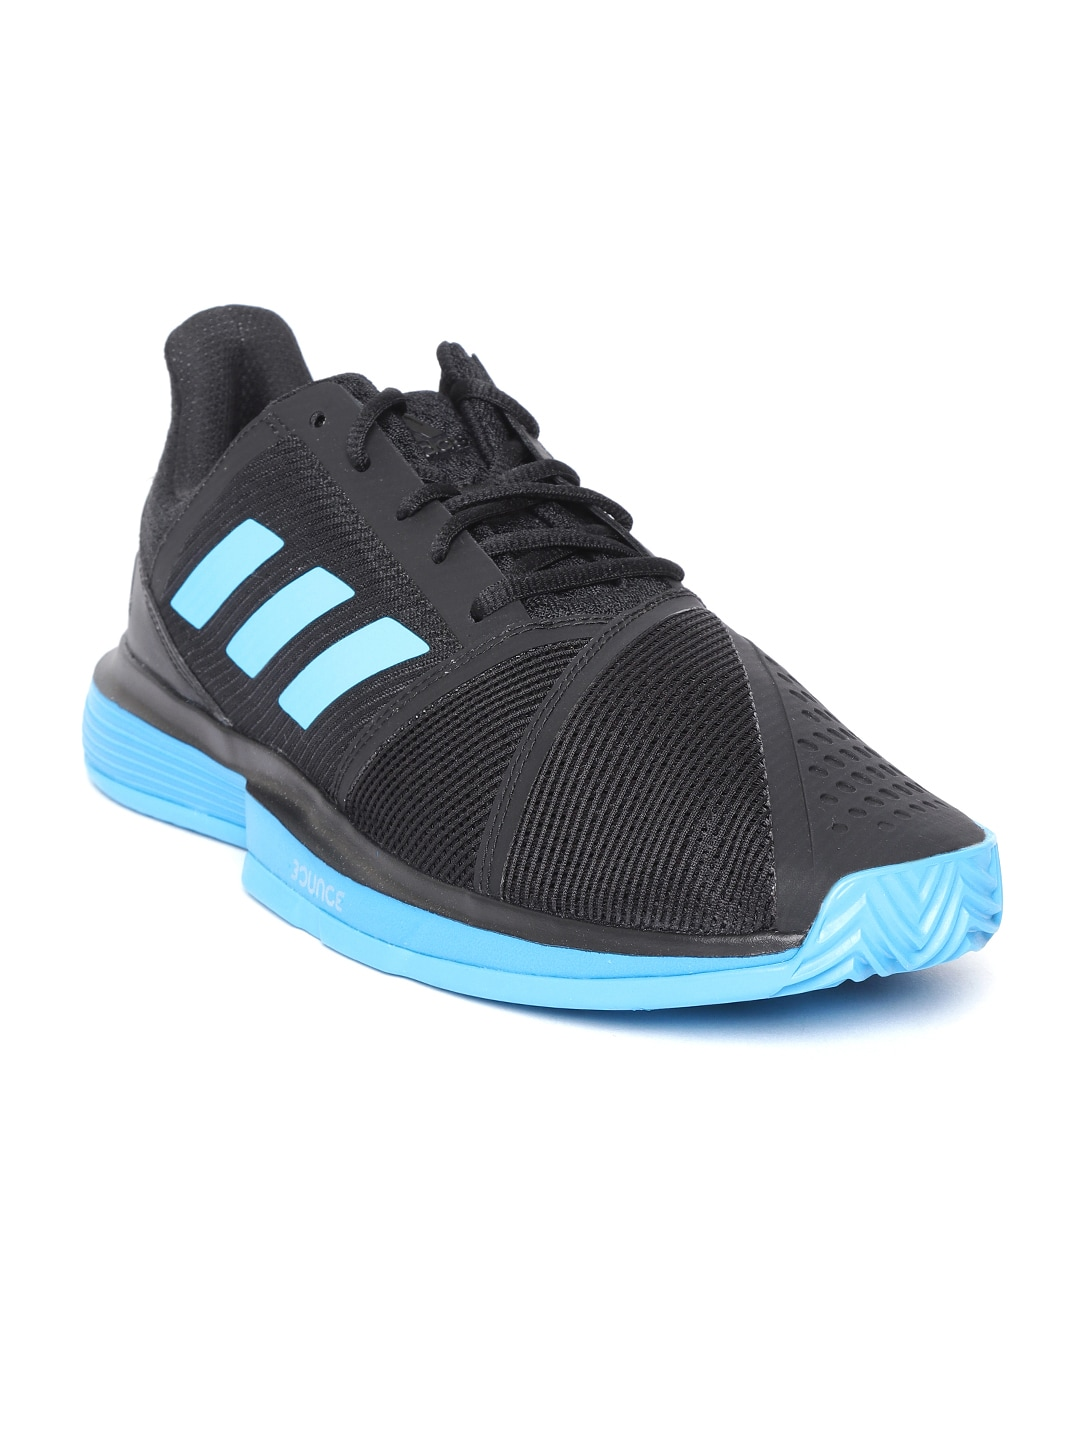 02ebd62d6f22 Adidas Shoes - Buy Adidas Shoes for Men   Women Online - Myntra